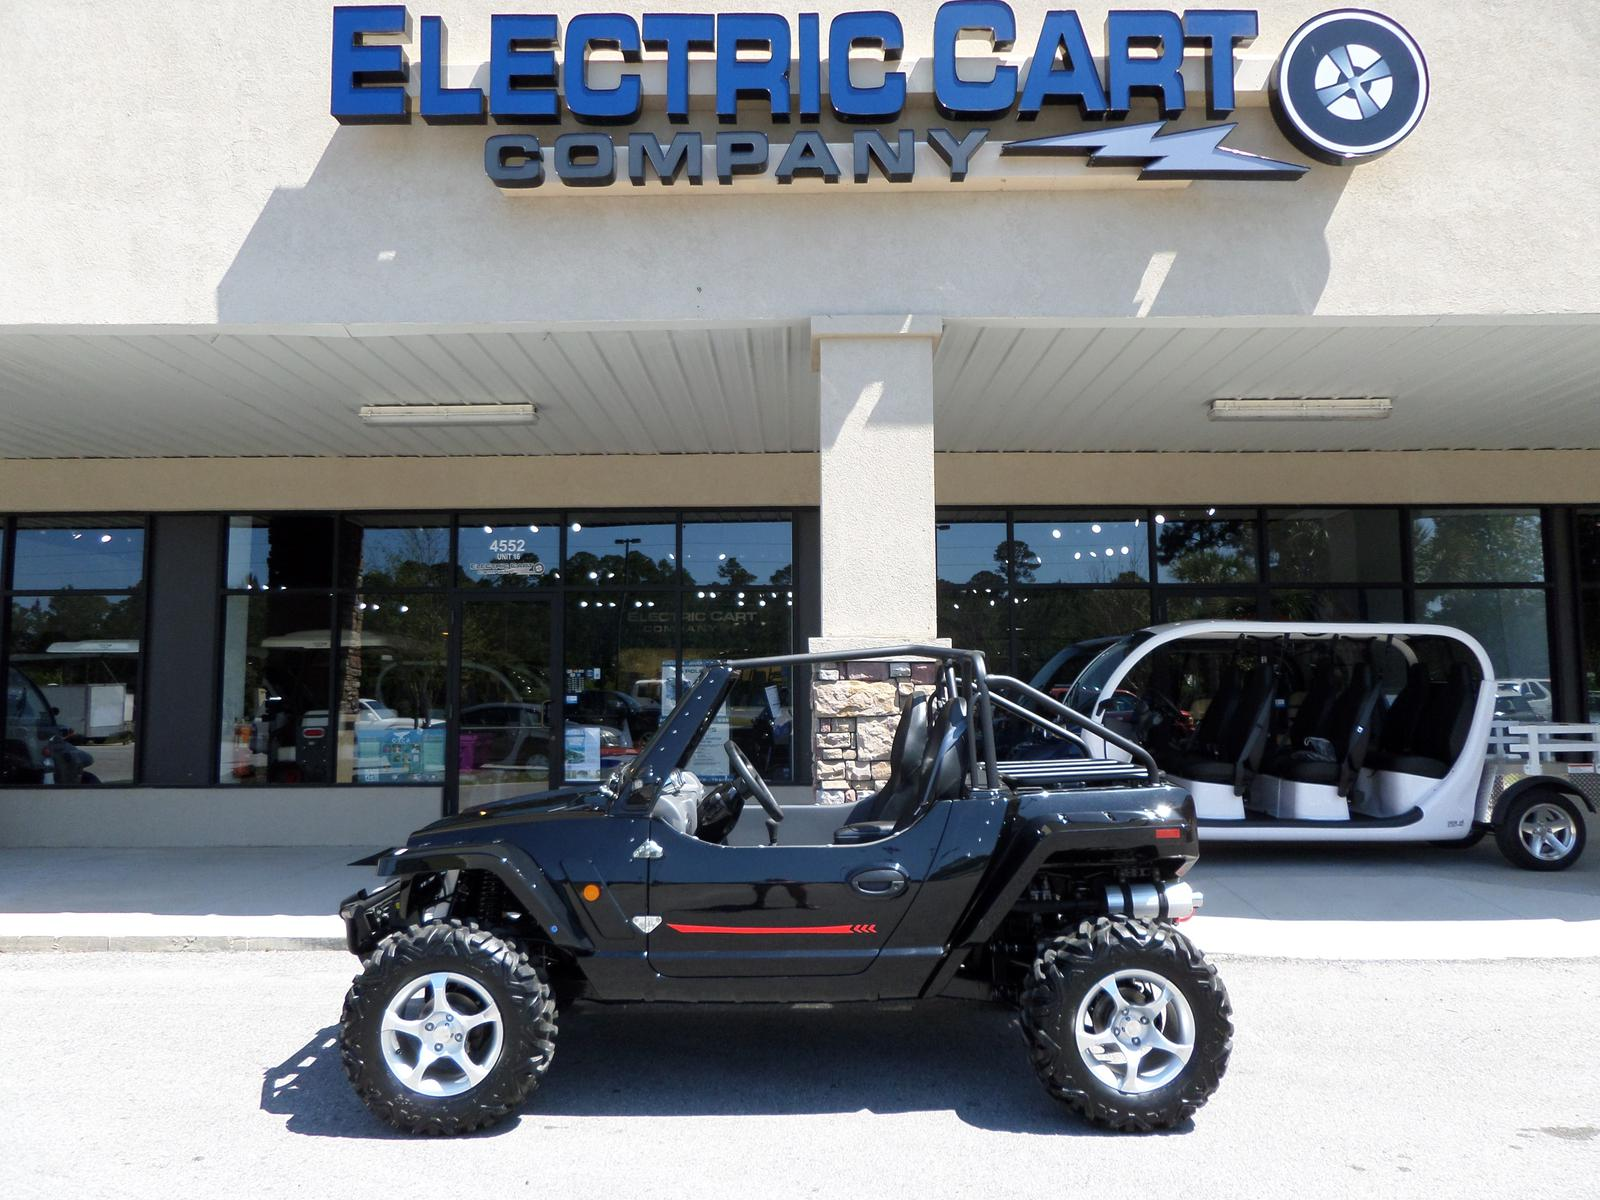 2015 Utility from Oreion Reeper Electric Cart Company